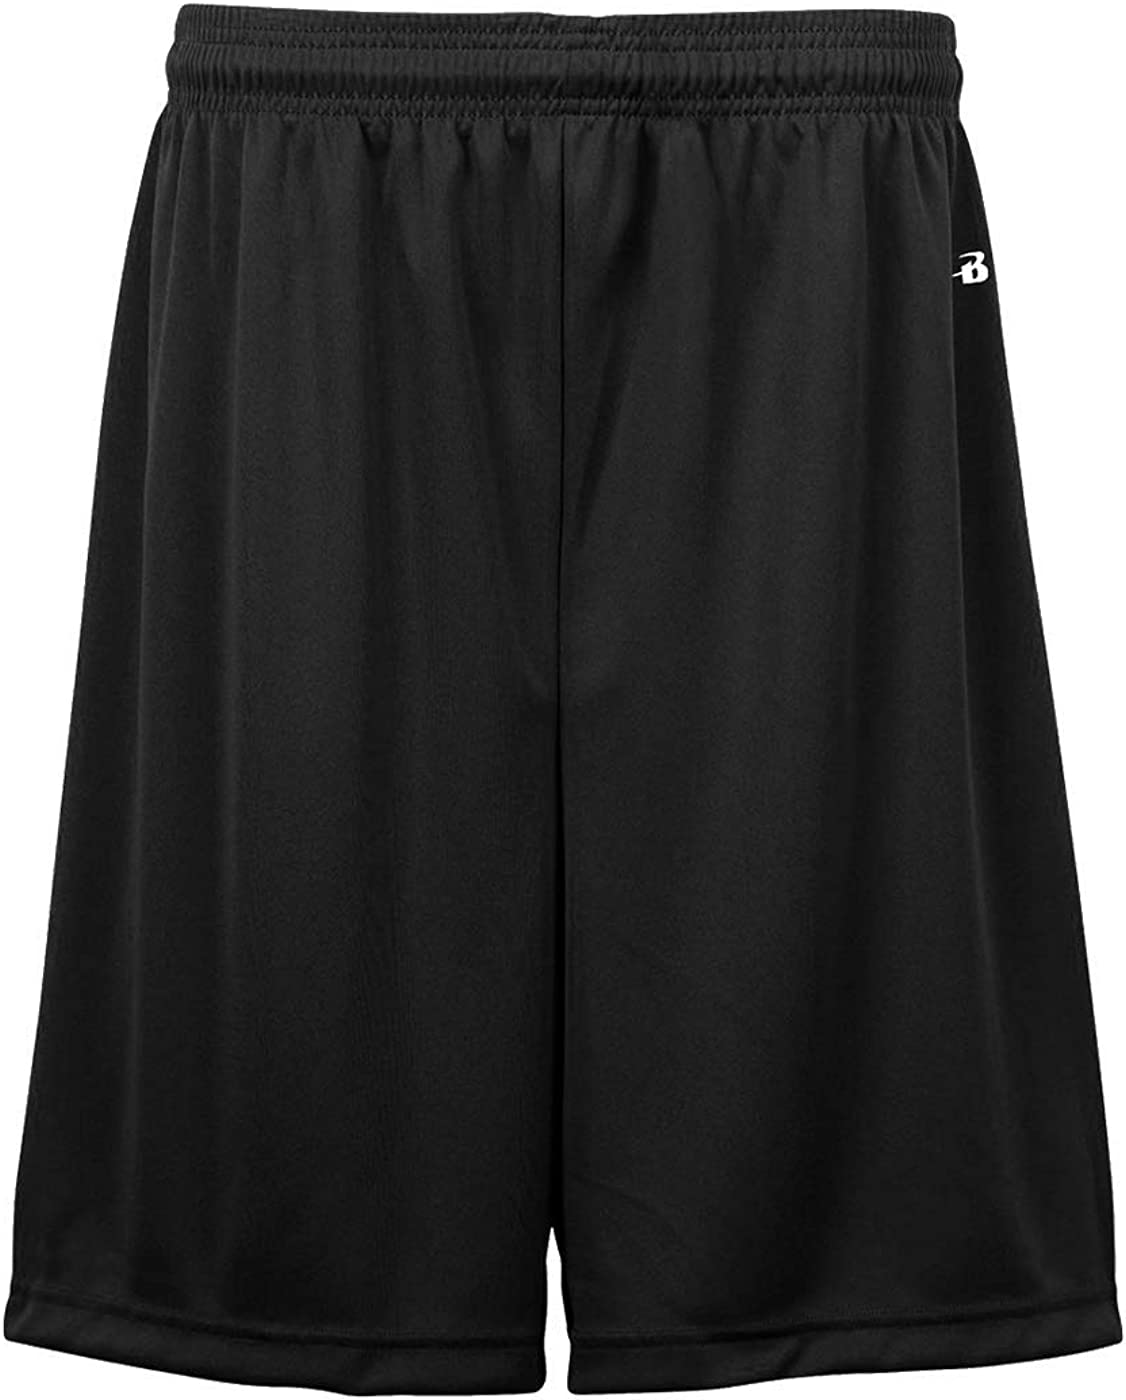 Black Youth XL (Blank) Athletic Wicking Sports Shorts